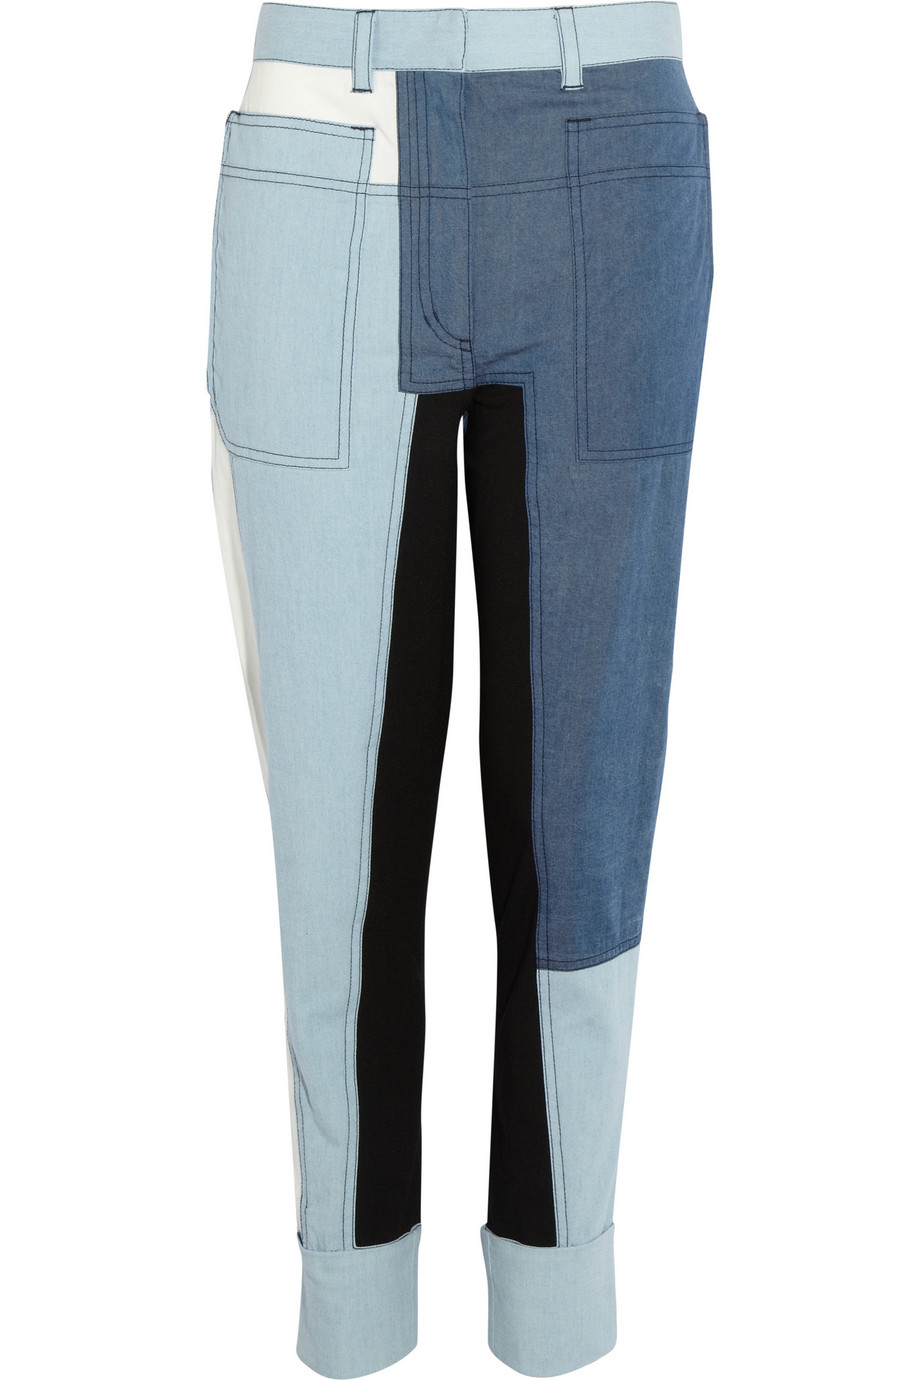 I've been dreaming about these 3.1 Phillip Lim patchwork pants ($425) since first seeing them on the runway. There's nothing more comfortable than an airy pair of chambray pants to pair with a basic tee and barely-there sandals. For a chilly Spring night, I would channel my inner Kurt Cobain and throw on a holey sweater with a beanie for maximum '90s appeal. — Meg Cuna